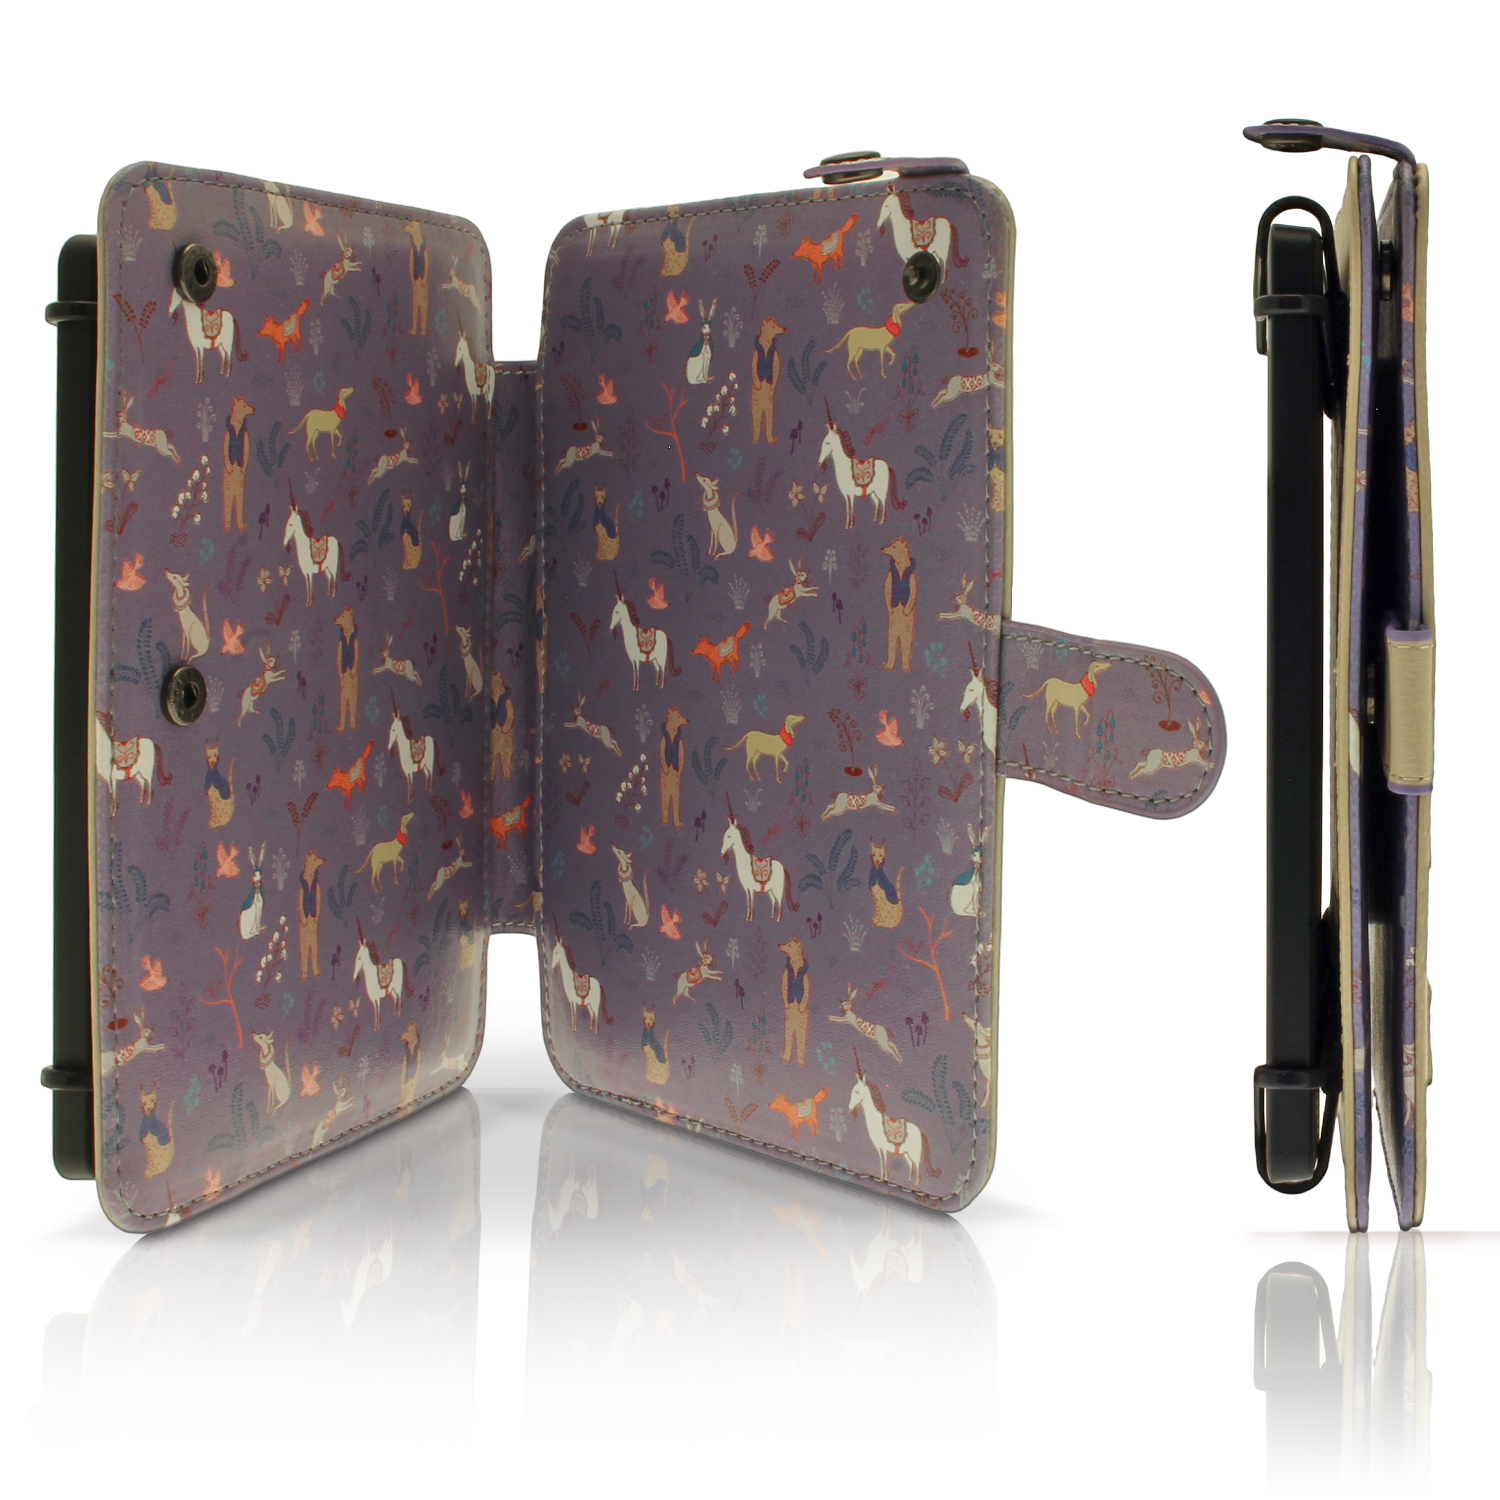 Details about PU Leather Skin Folio Case for Kobo Glo HD 2015, Touch 2 &  Aura Stand Flip Cover